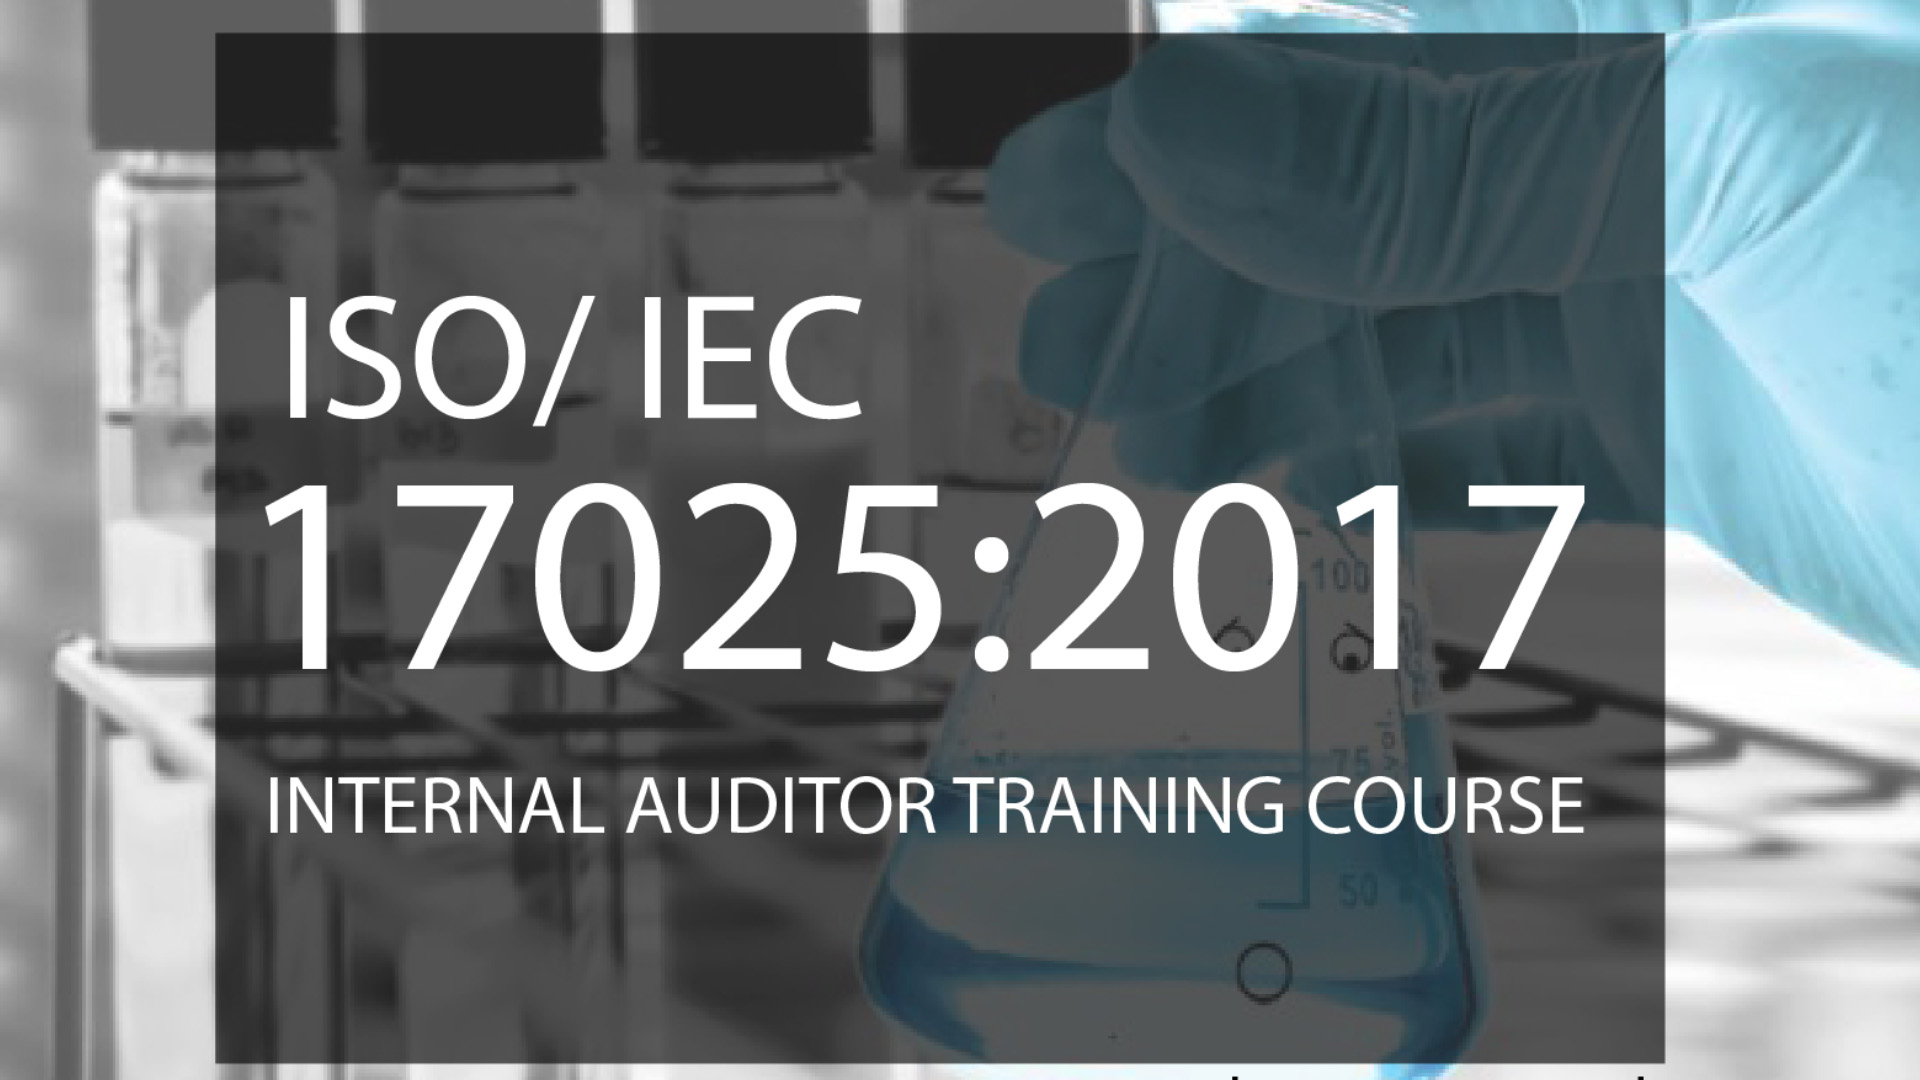 ISO/IEC 17025:2017 Internal Auditor Training Course